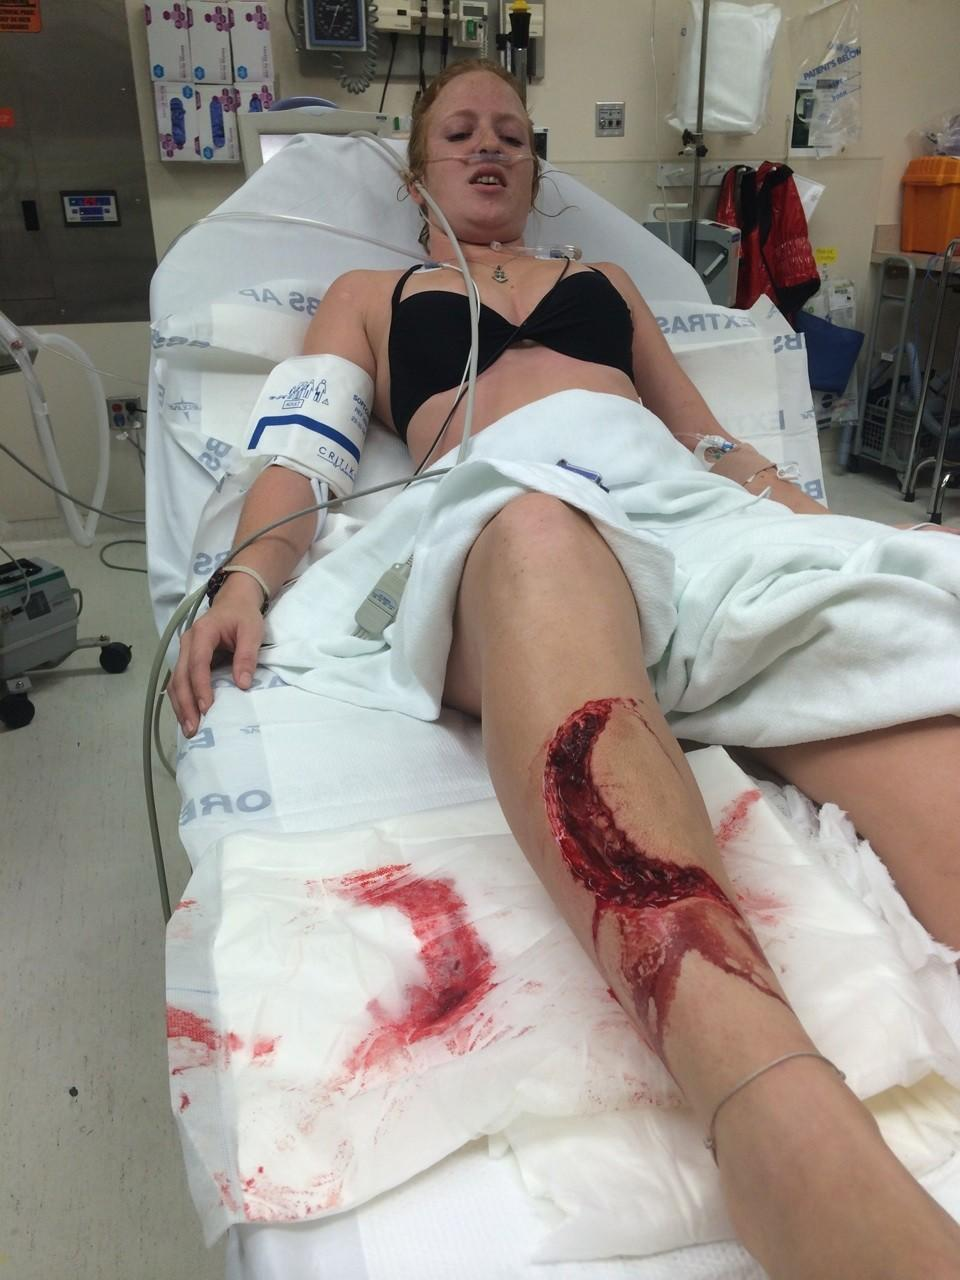 In a rare attack in the Intracoastal Waterway, a 22-year-old woman was bitten by what officials say was likely a shark. Jessica Vaughn, 22, of Coral Springs, was in surgery Sunday evening at Broward Health Medical Center. She suffered a large gash to her right leg during the 2 p.m. attack, but she is expected to make a full recovery, her friend Peter Hogge said. Vaughn had been on a boat with Hogge and three other friends near Bayshore Towers condominiums, just south of Sunrise Boulevard. The friends put on life vests and jumped into the water to go inner-tubing. Woman identified by friends as Jessica was bitten by what officials say may have been a shark on Sunday in Fort Lauderdale. She's pictured at Broward Health. Source: courtesy of Peter Hogge Handout photo provided by: courtesy of Peter Hogge